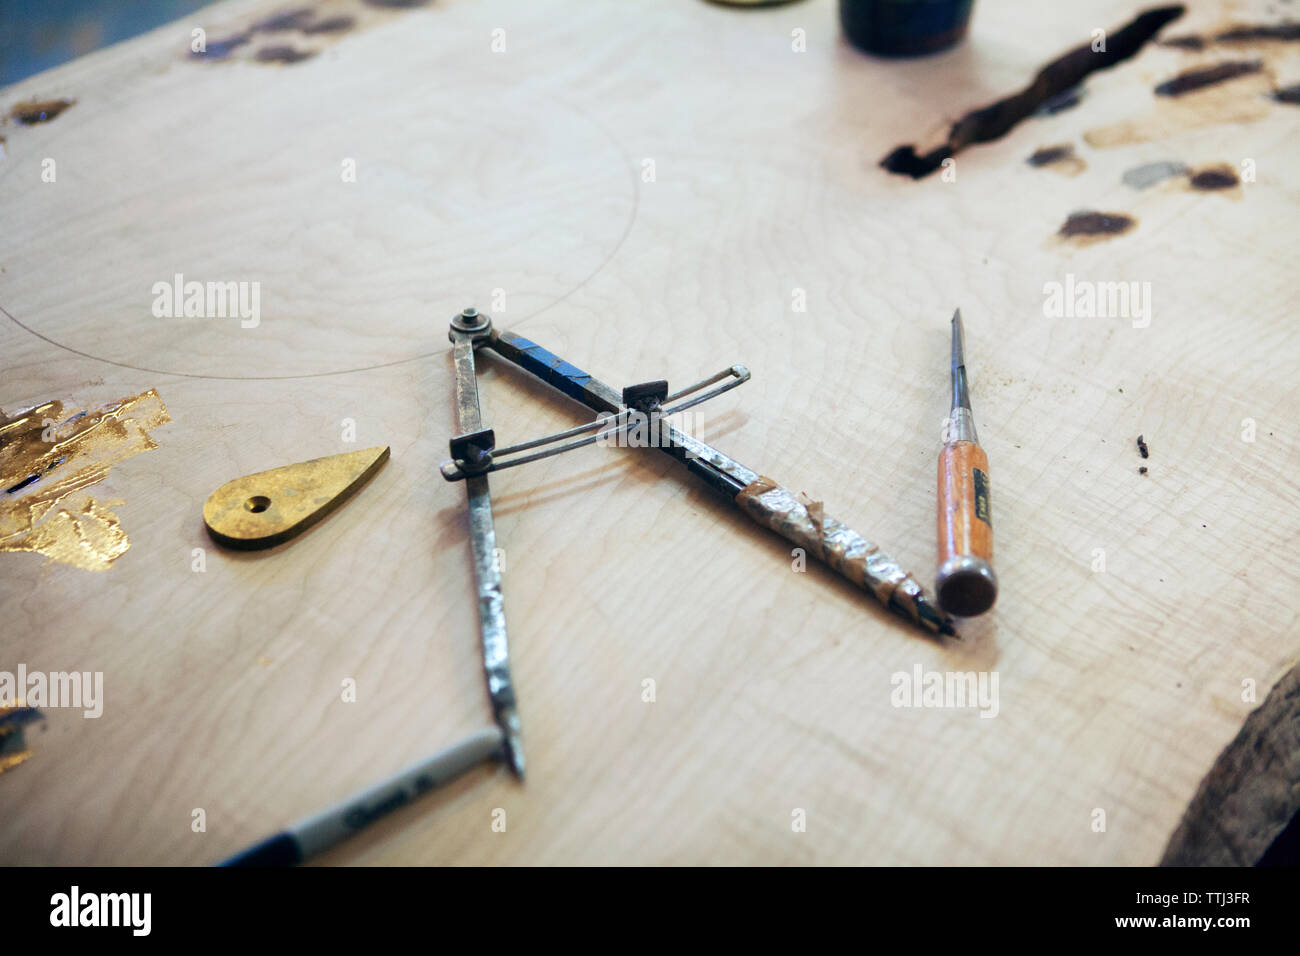 High angle view of drafting compass on wooden plank at workshop - Stock Image